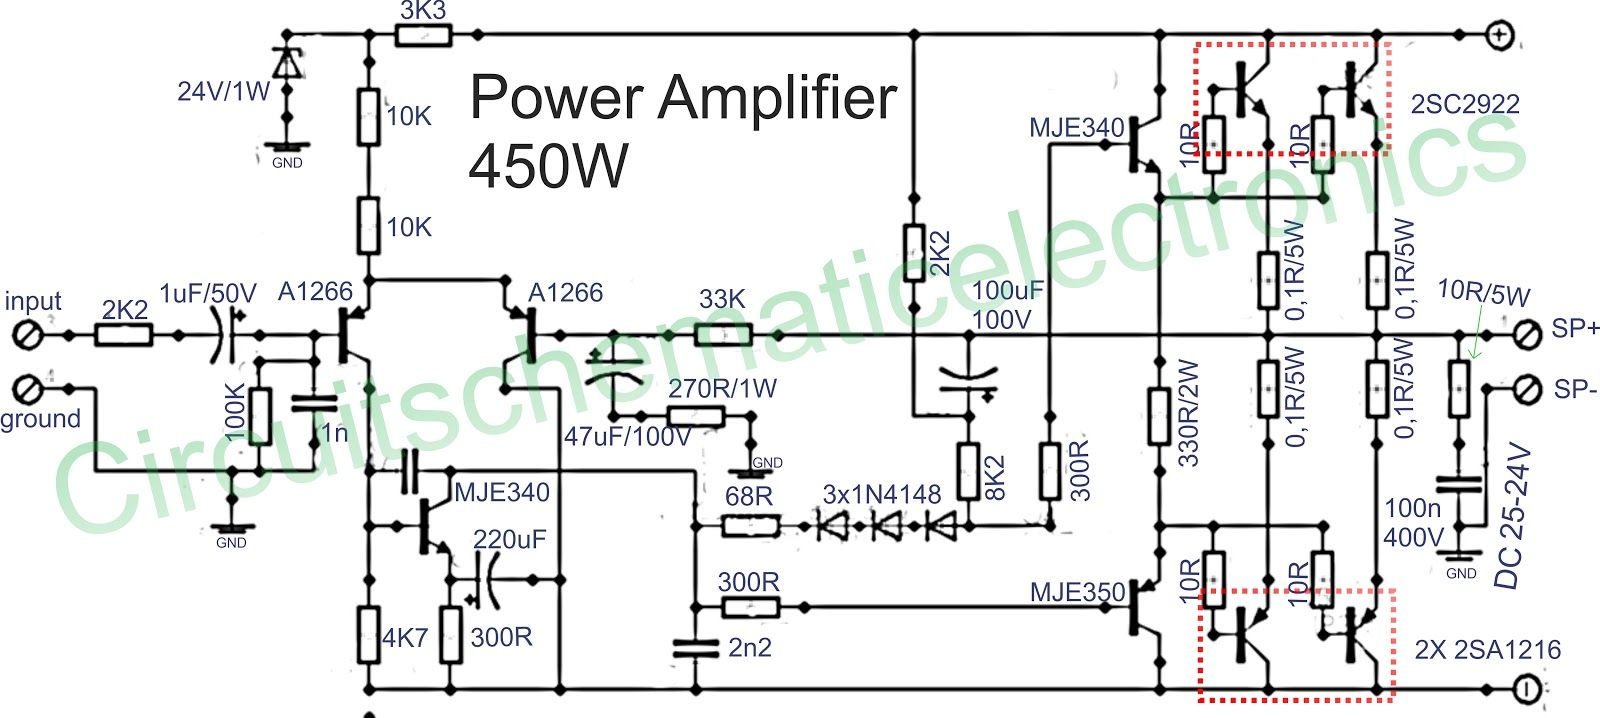 circuit of power amplifiers with power output of 450 watts mono with transistor booster sanken amplifiers are also frequently used in the amplifier a  [ 1600 x 718 Pixel ]